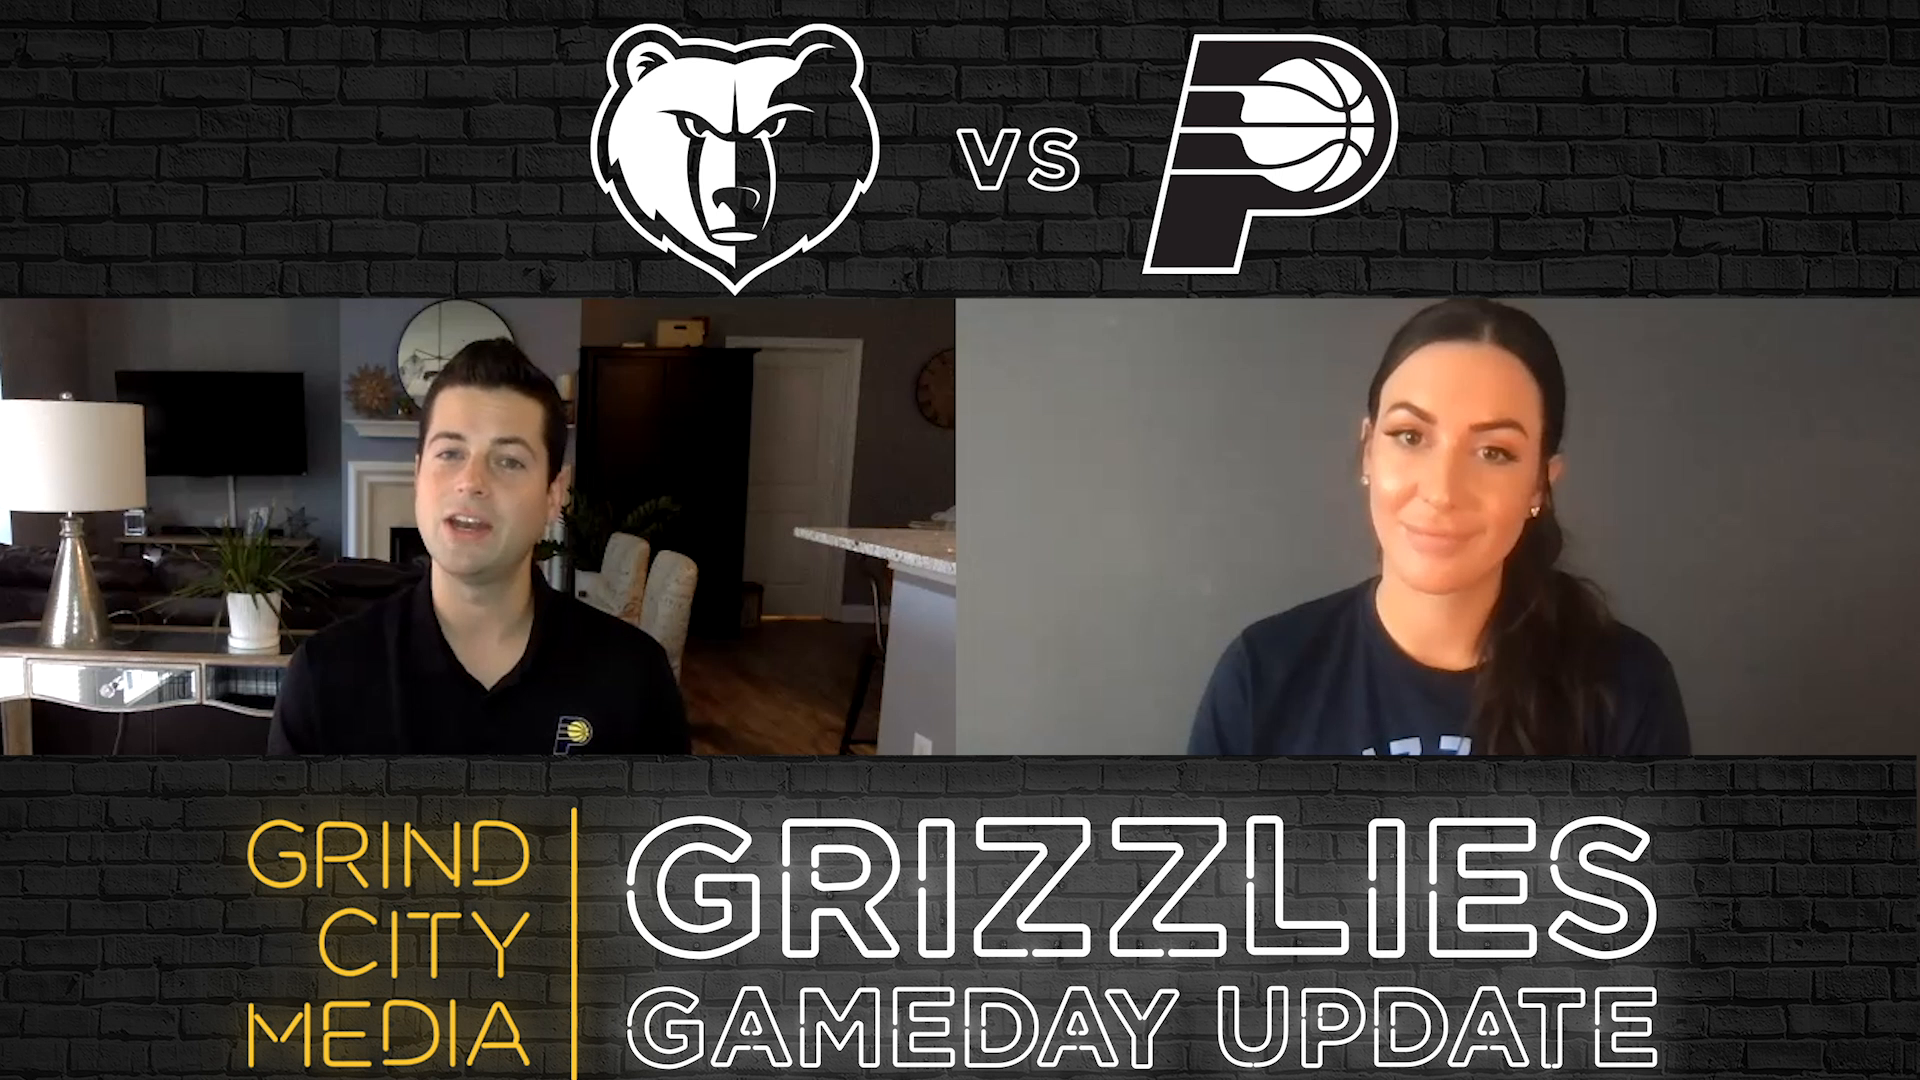 Gameday Update: Grizzlies @ Pacers 10.13.21